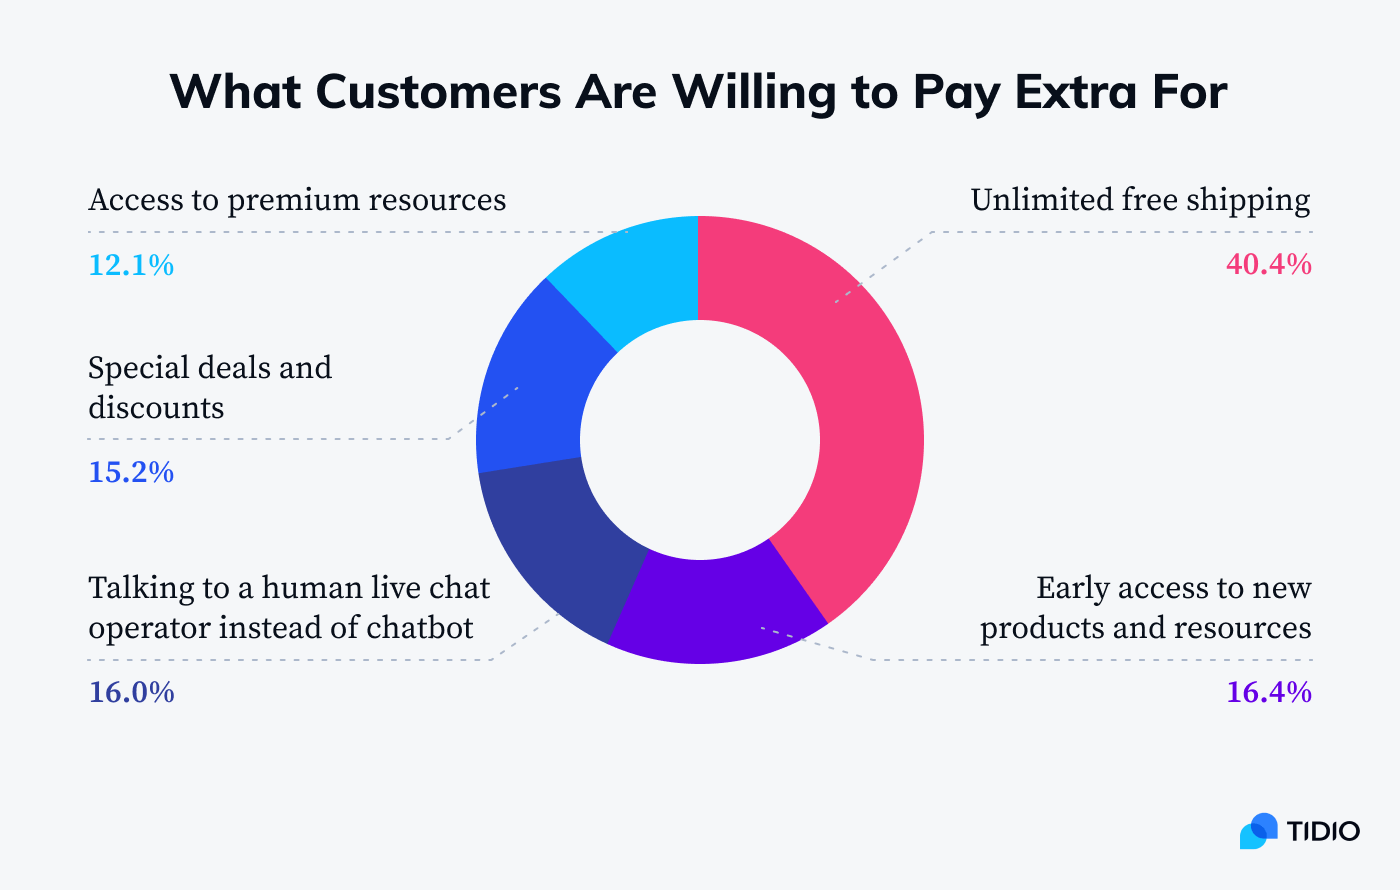 What customers are willing to pay extra for